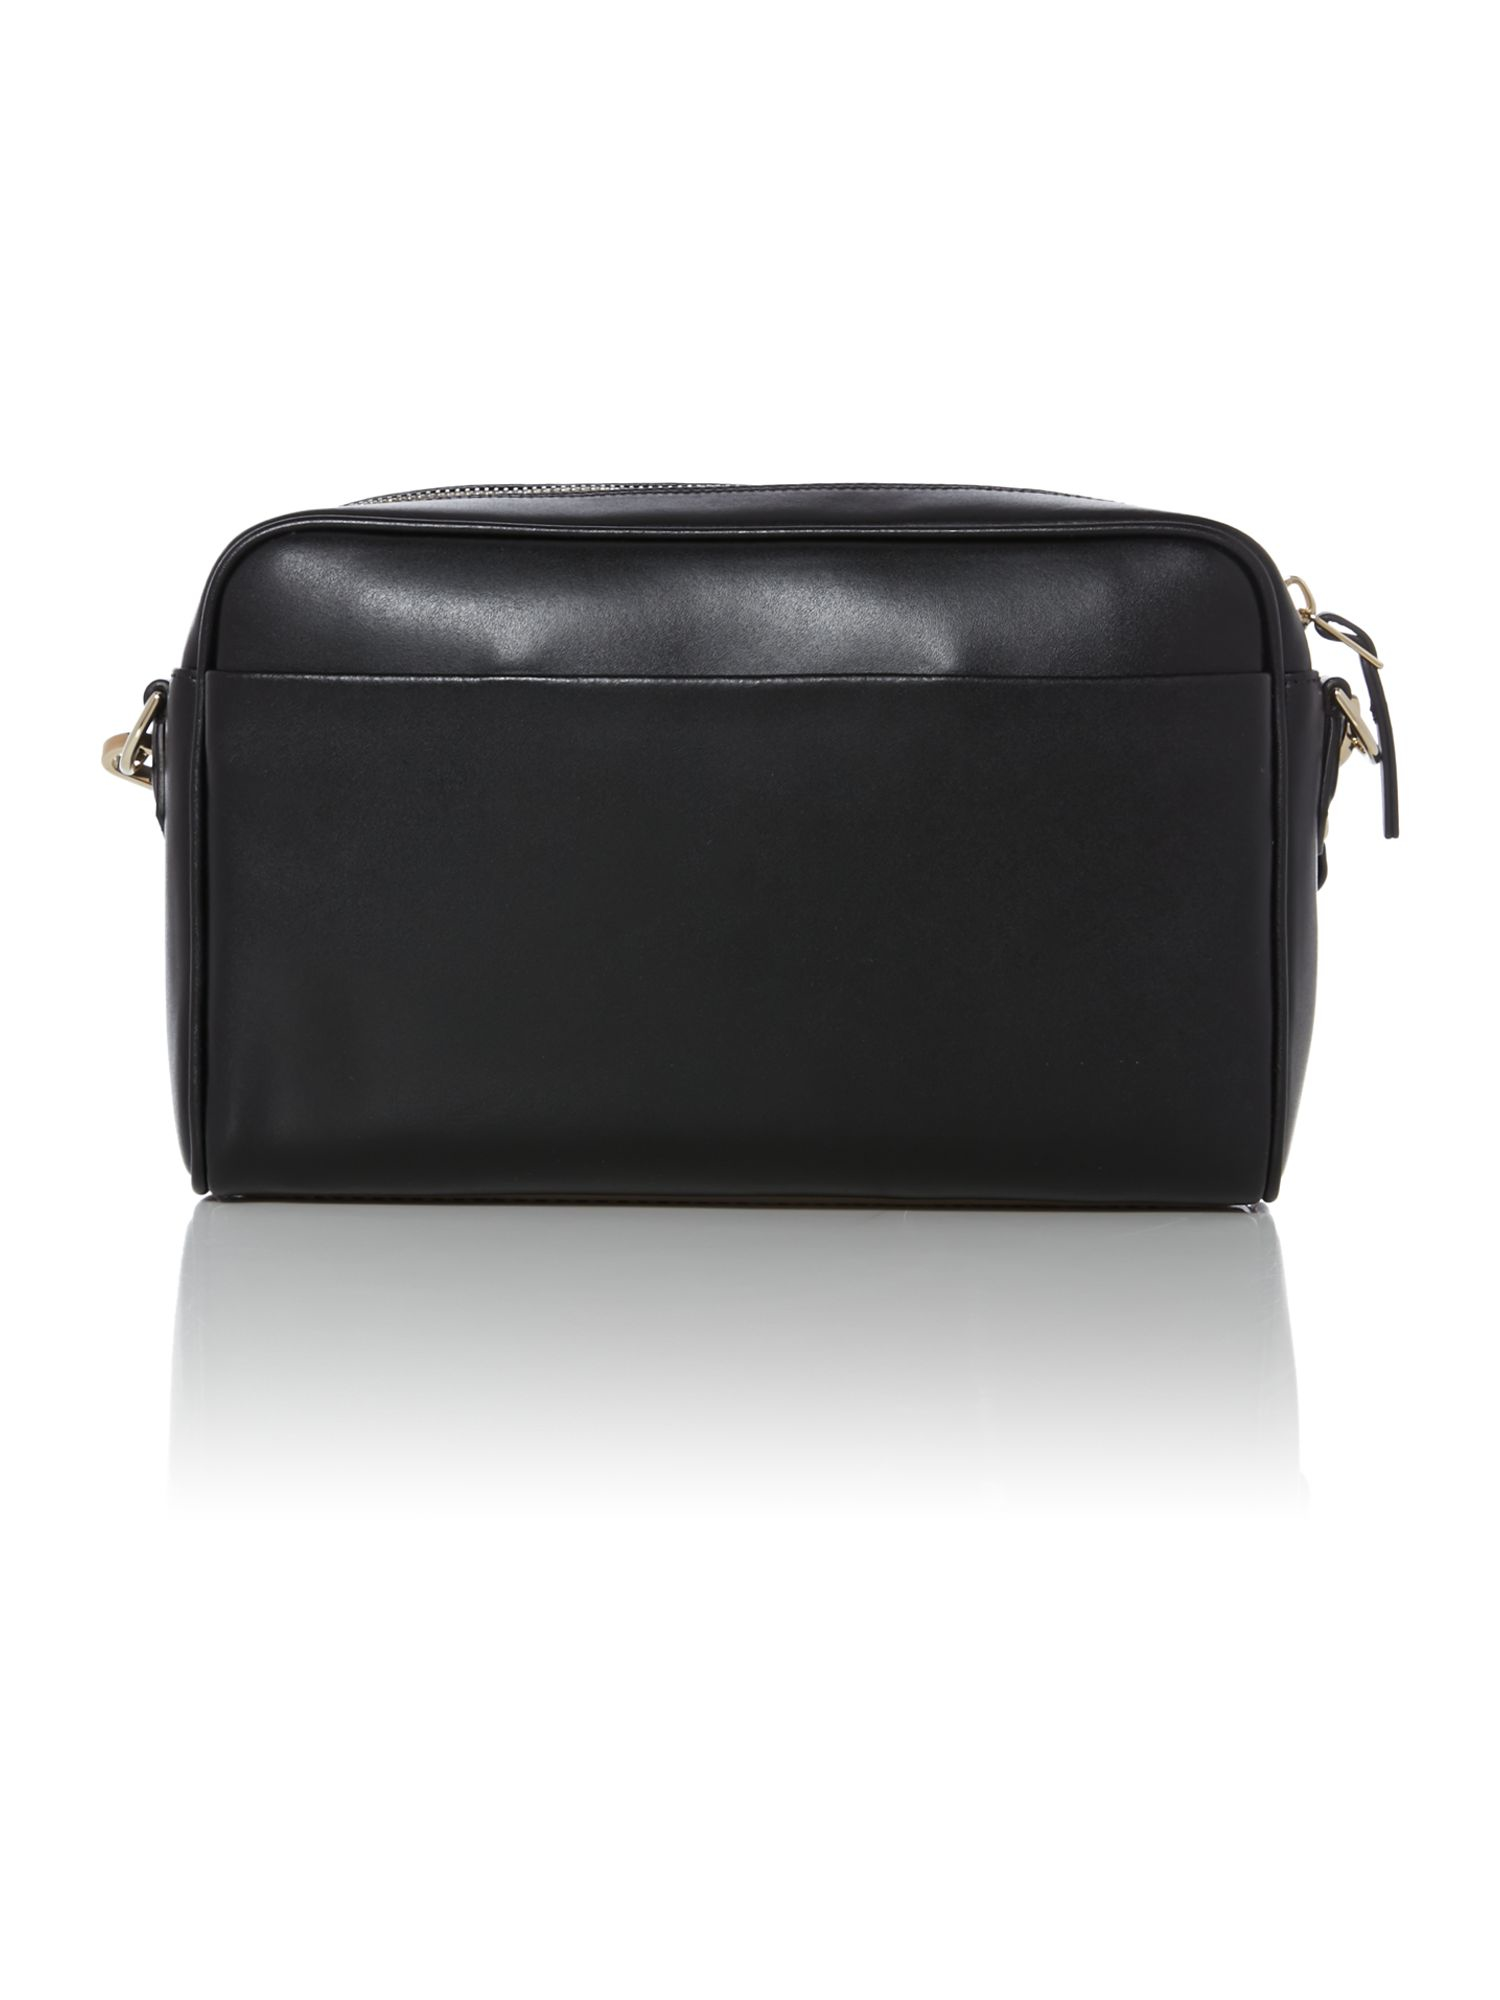 Paul smith Plain Leather Black Cross Body Bag in Black | Lyst